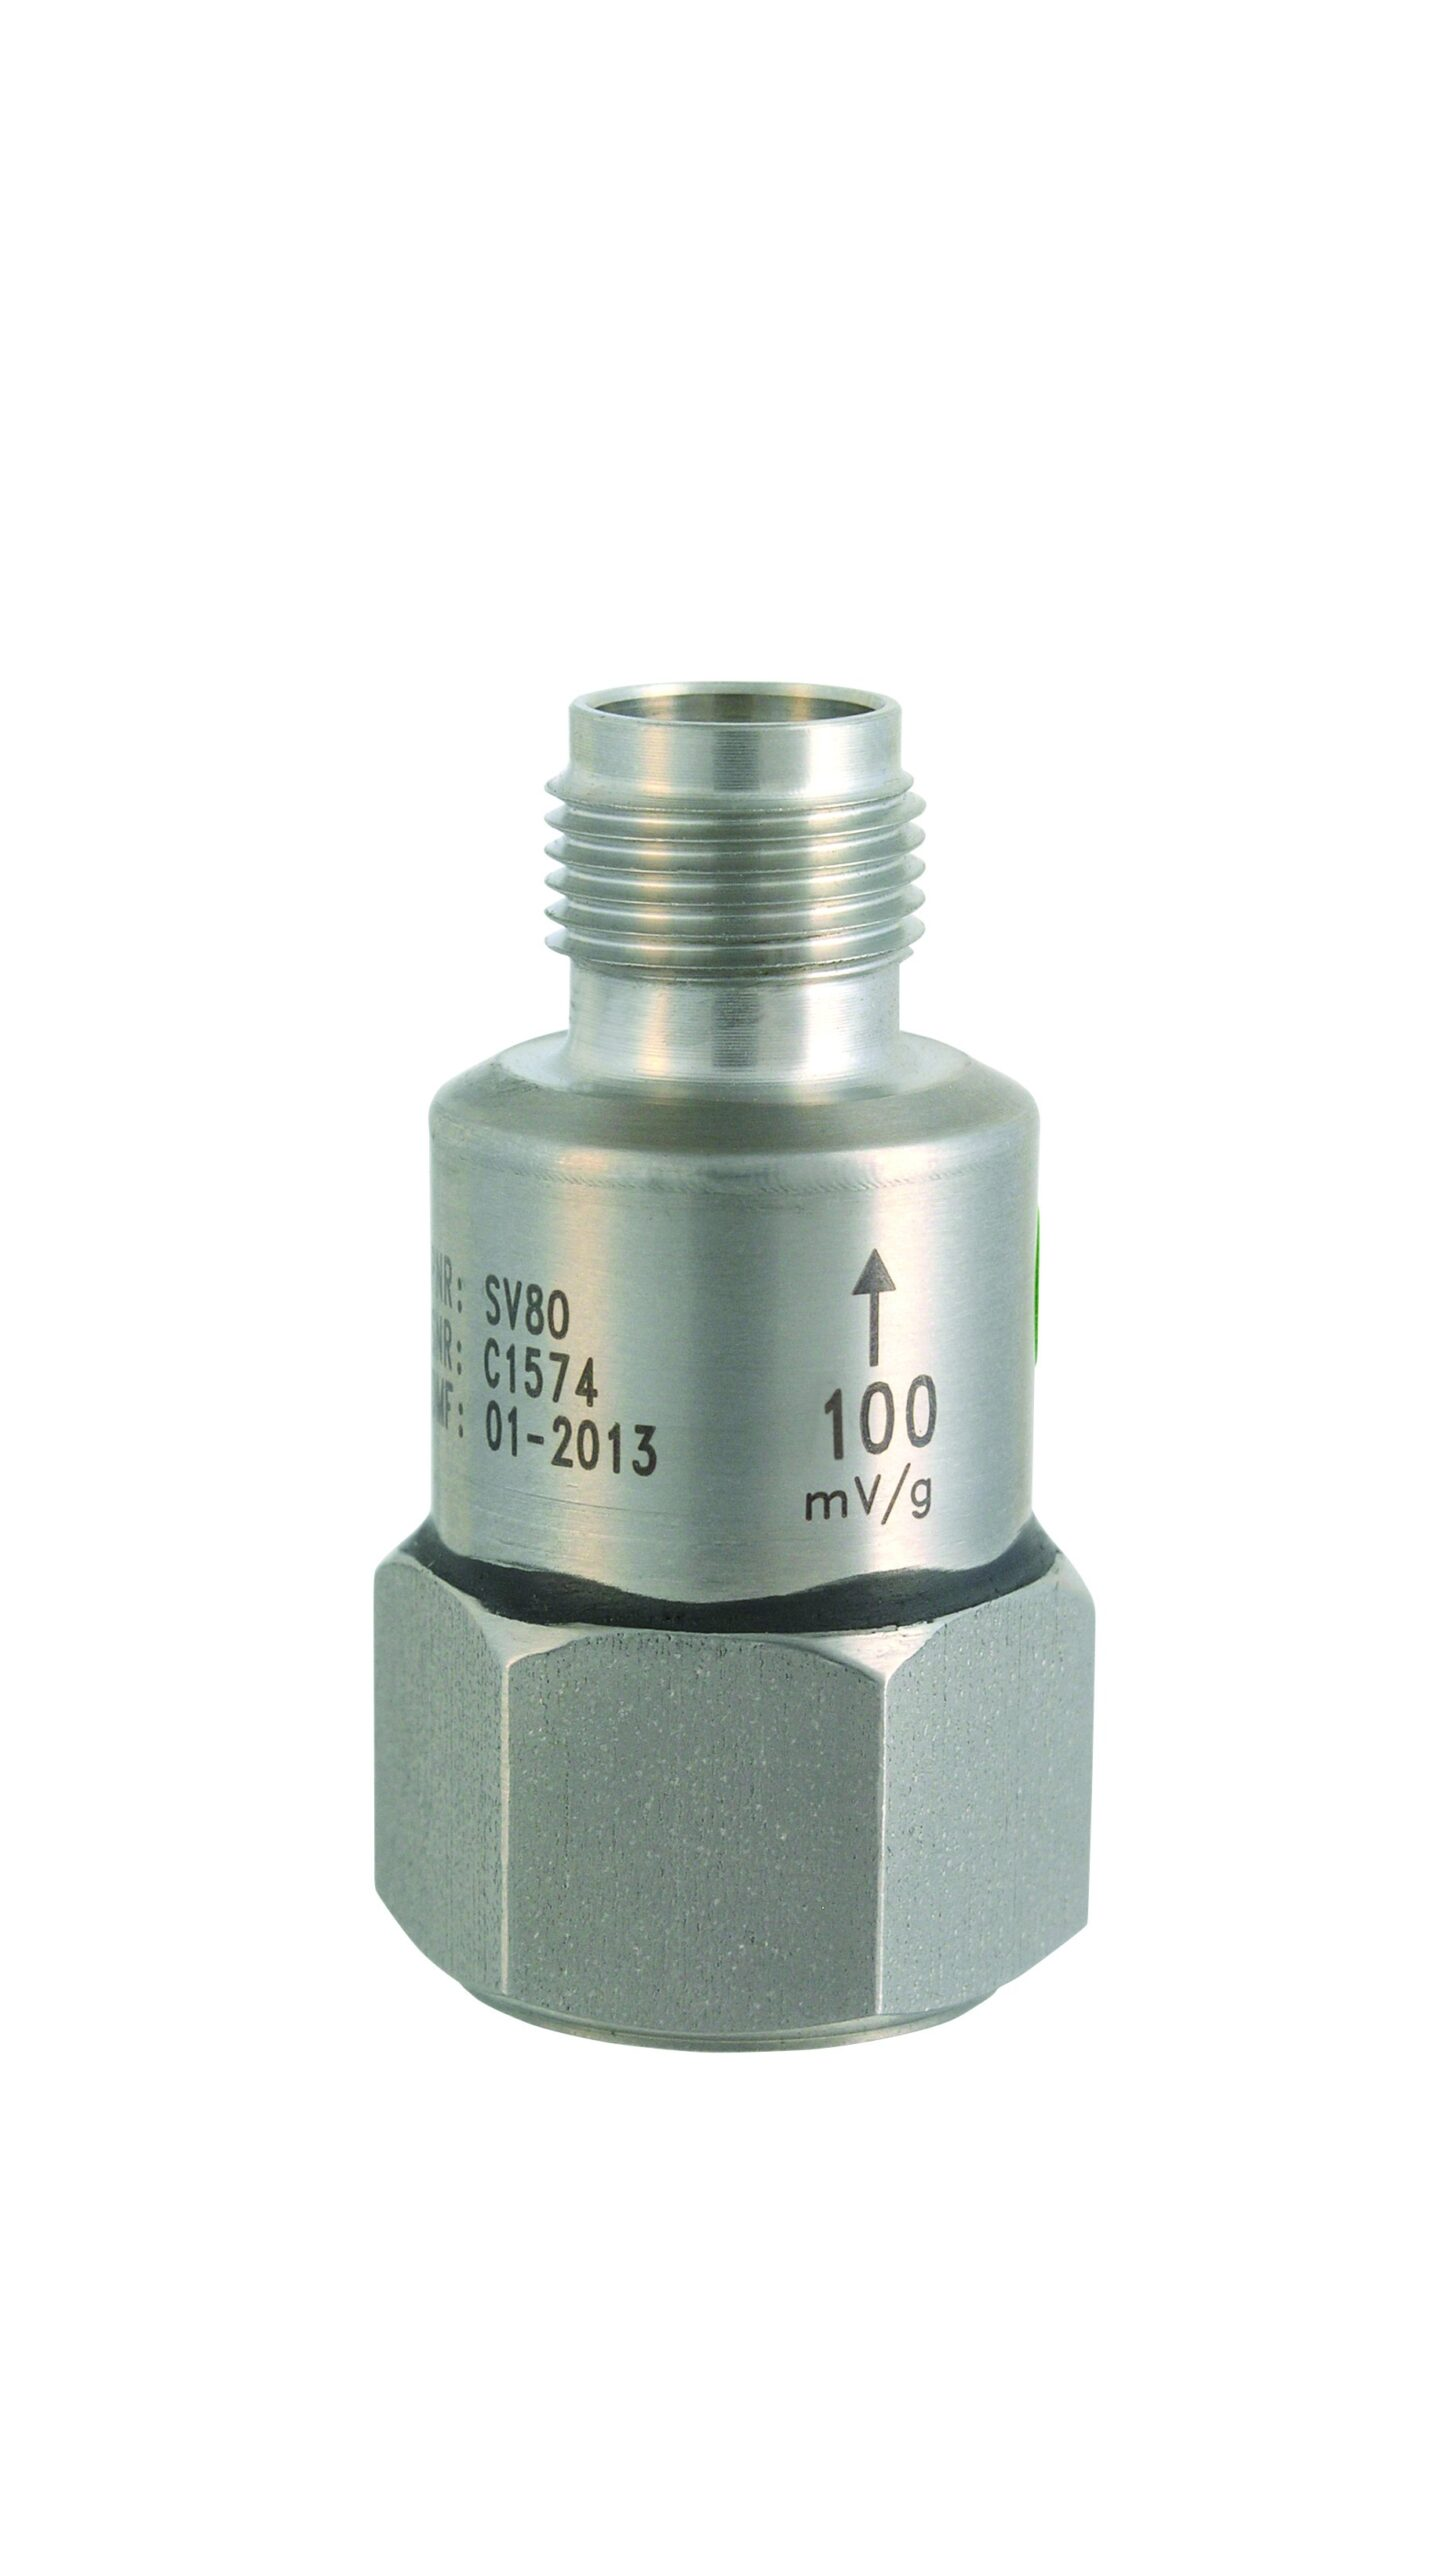 SV 80 General Purpose Accelerometer